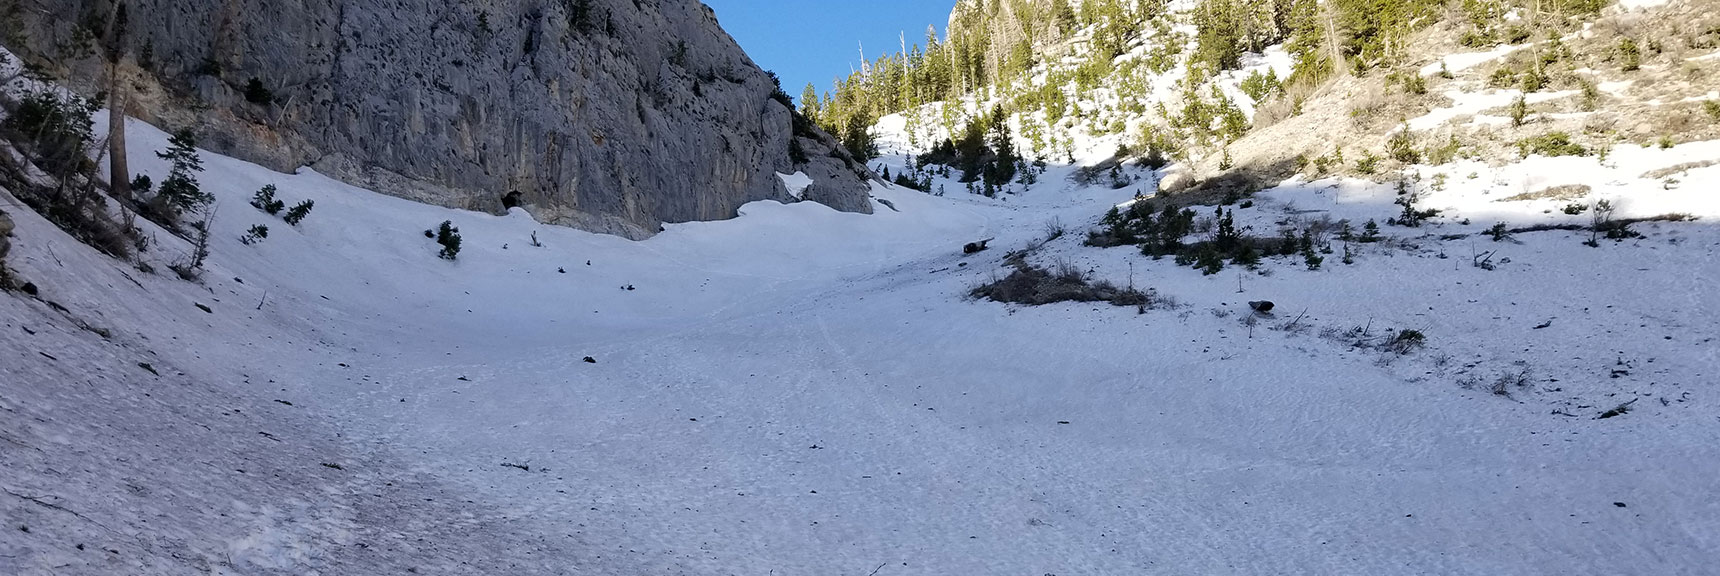 First June 2019 Snowfield on Trail to Griffith Peak, Nevada